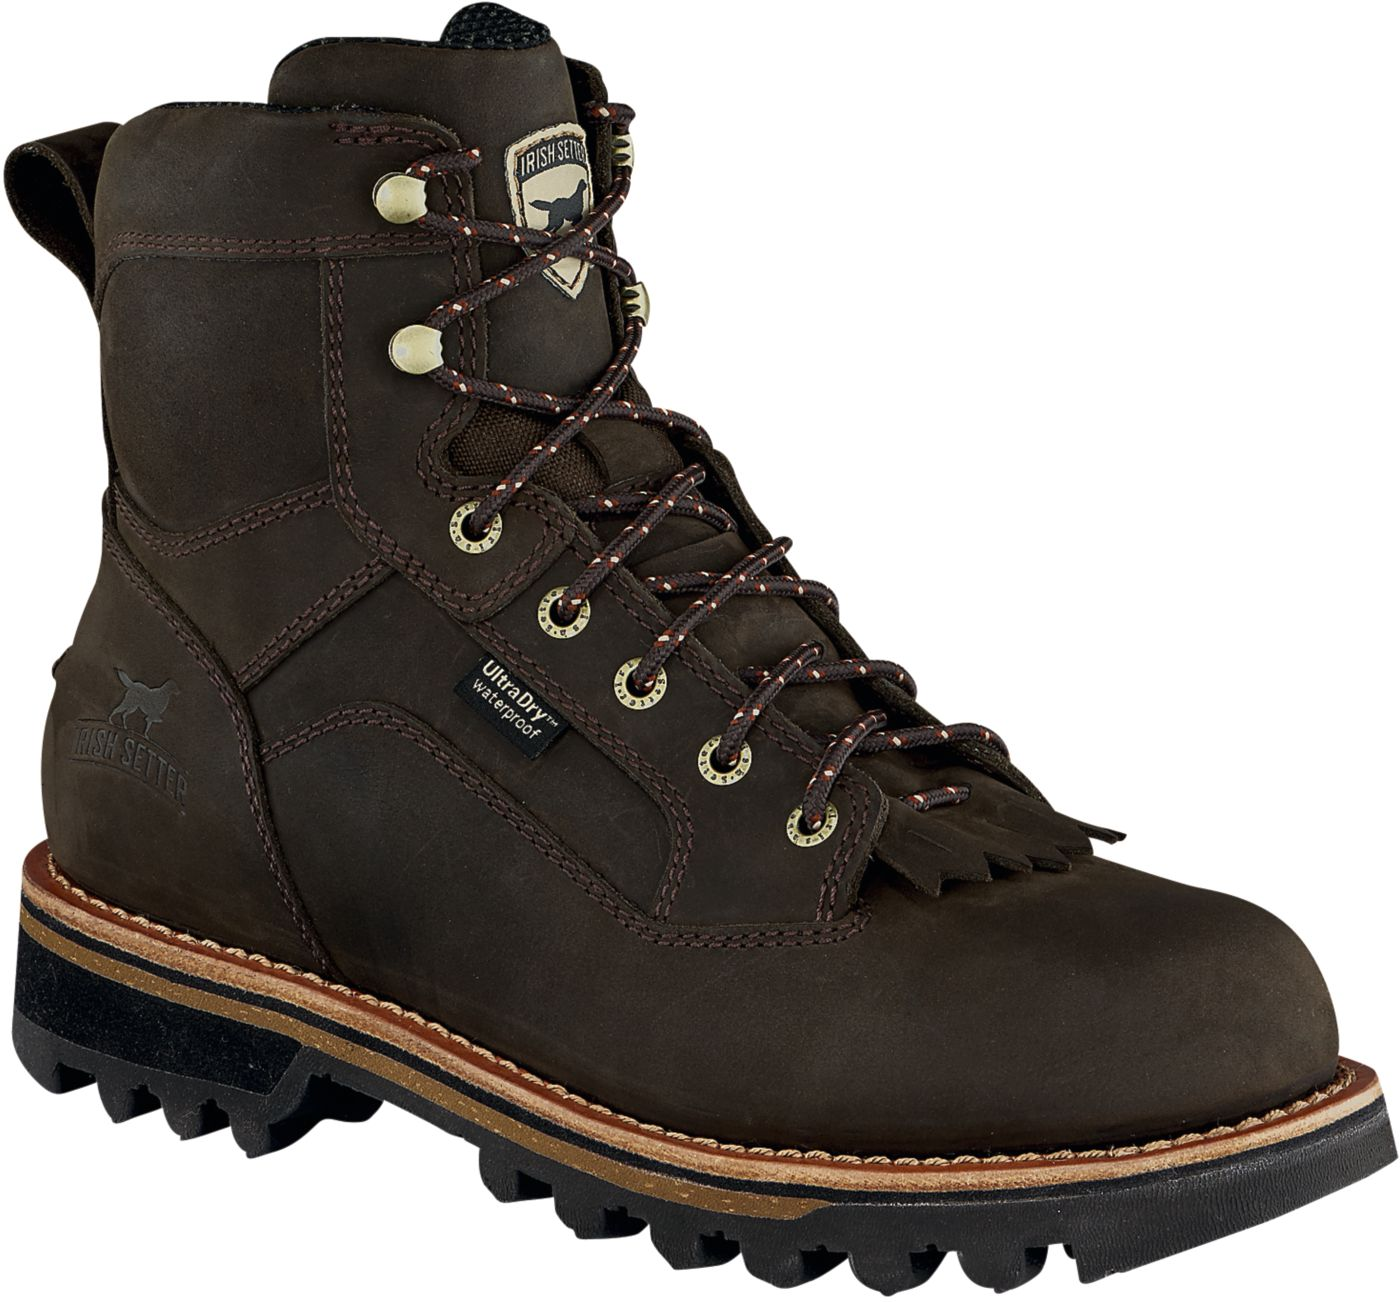 Irish Setter Men's Trailblazer 7'' UltraDry Waterproof Hunting Boots